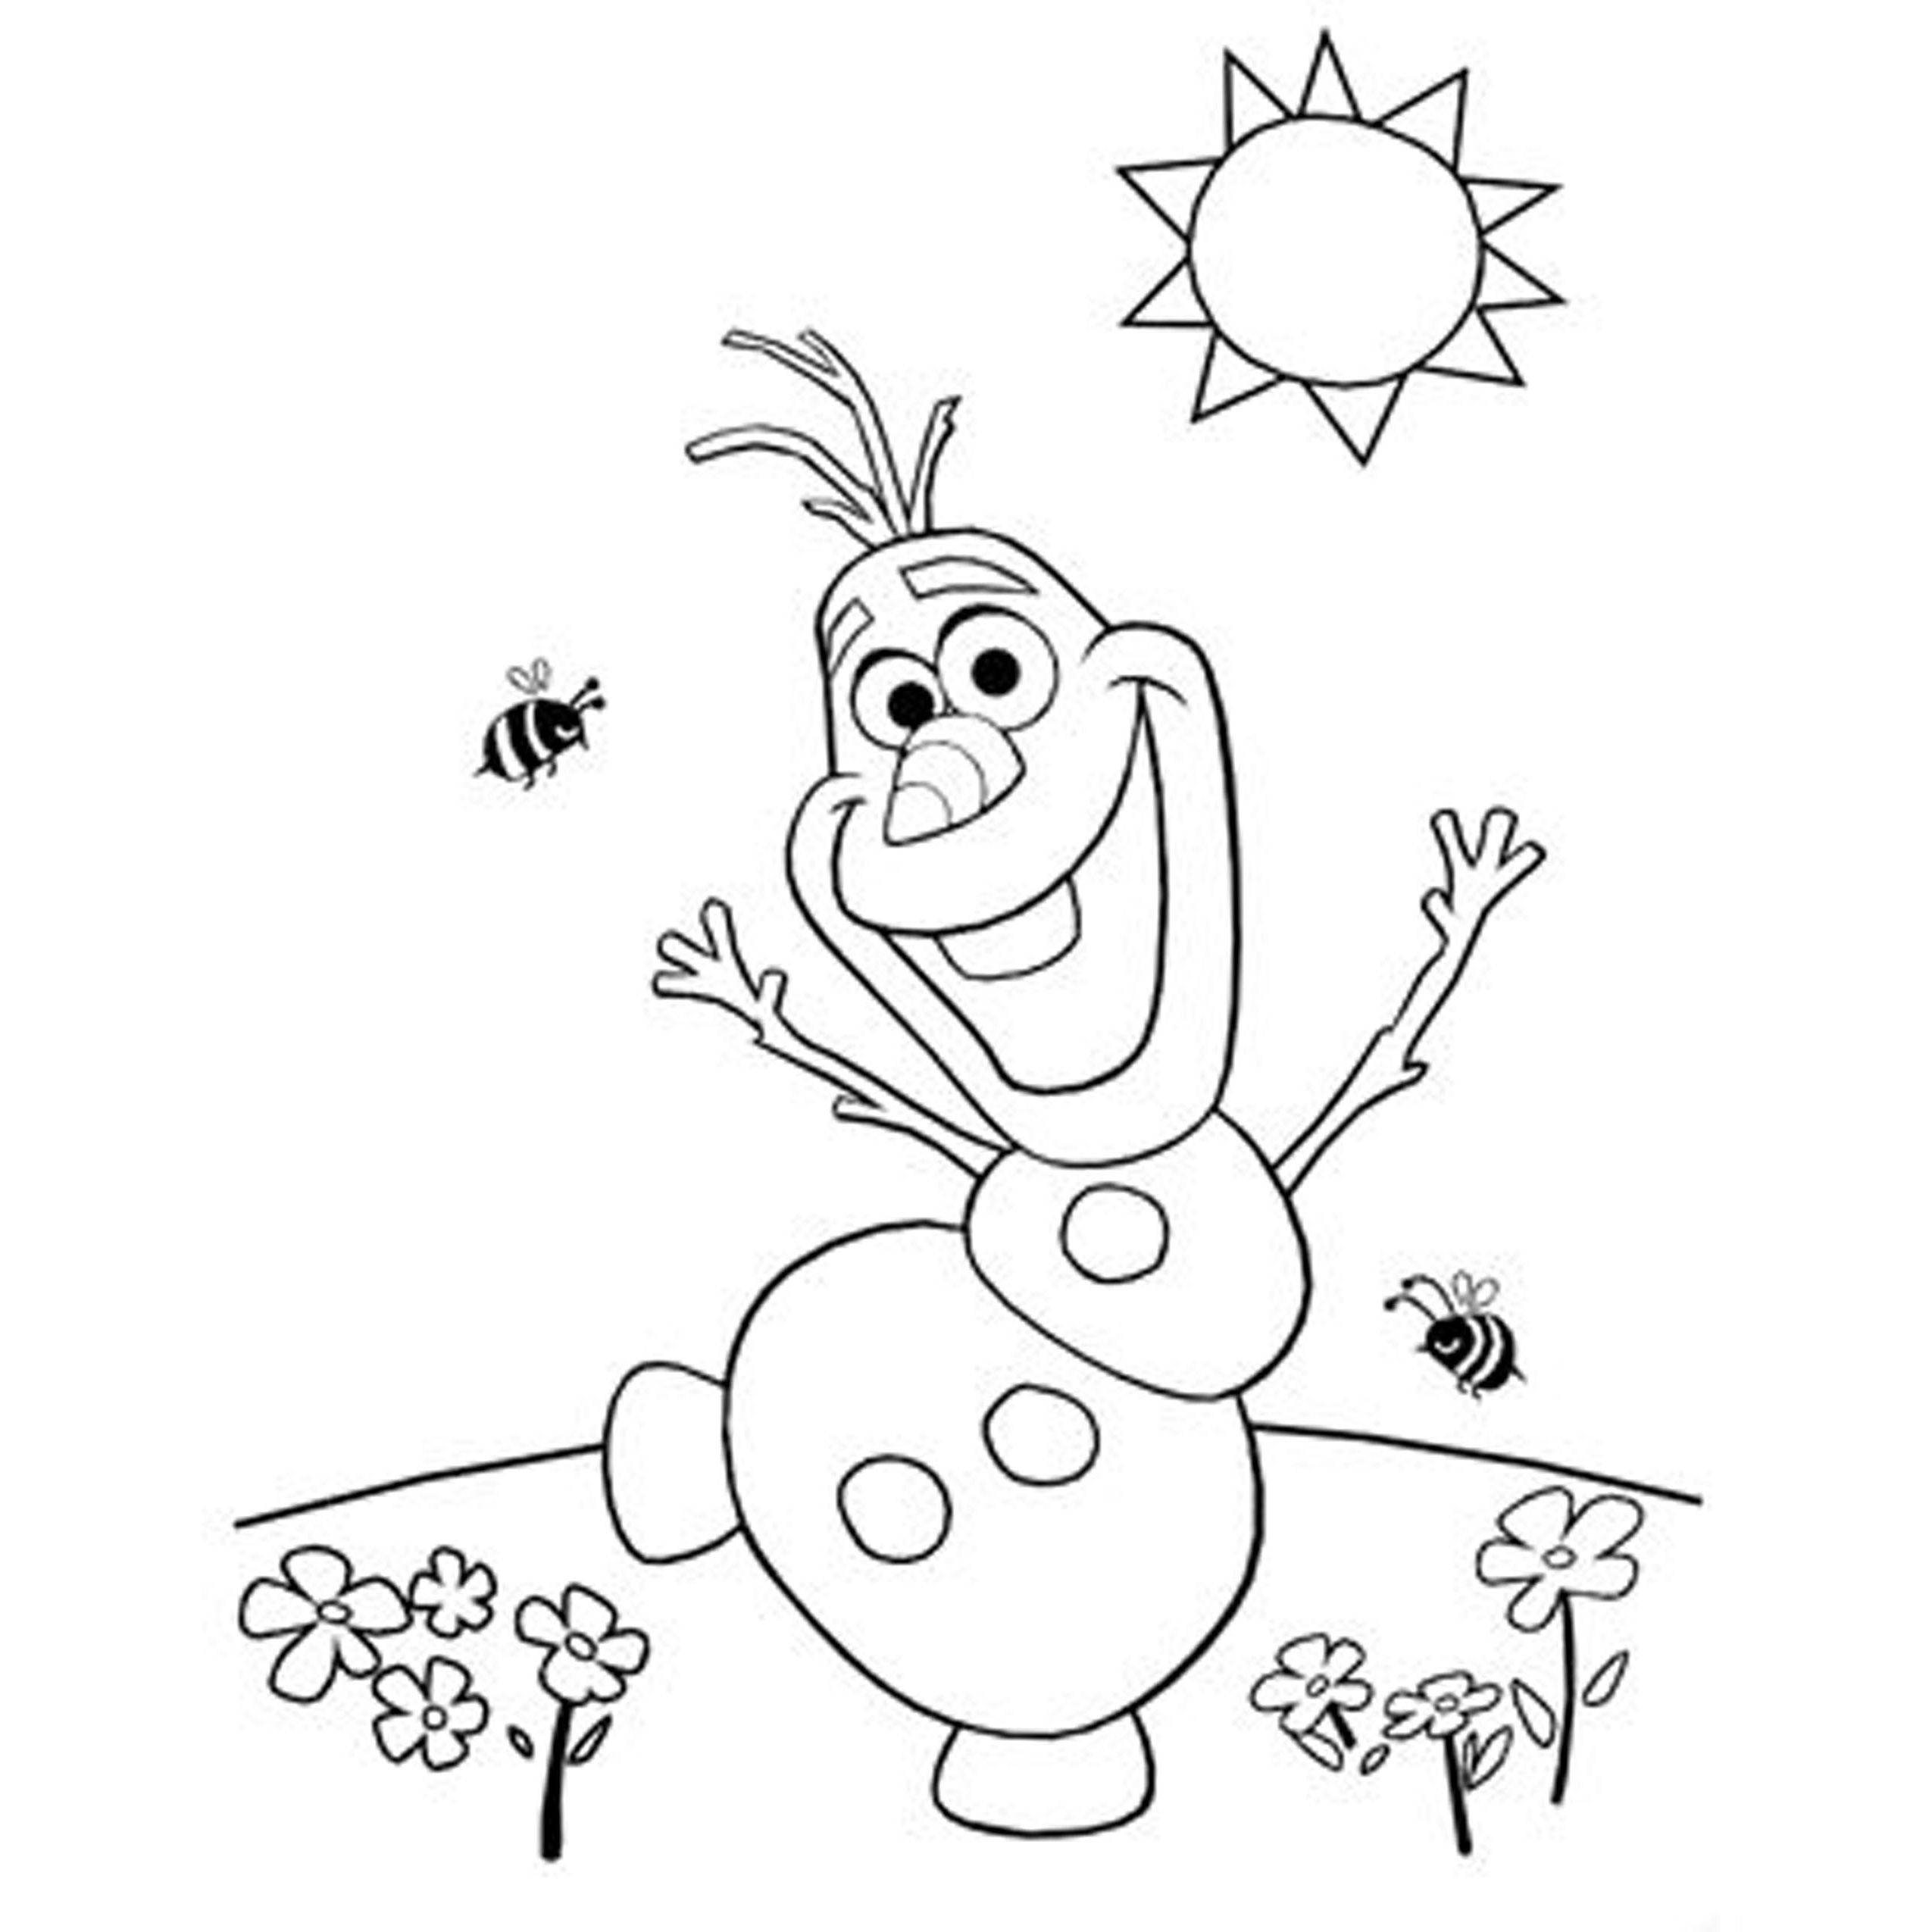 2550x2550 Olaf Is Happy Free Coloring Page Disney, Frozen, Kids Coloring Pages